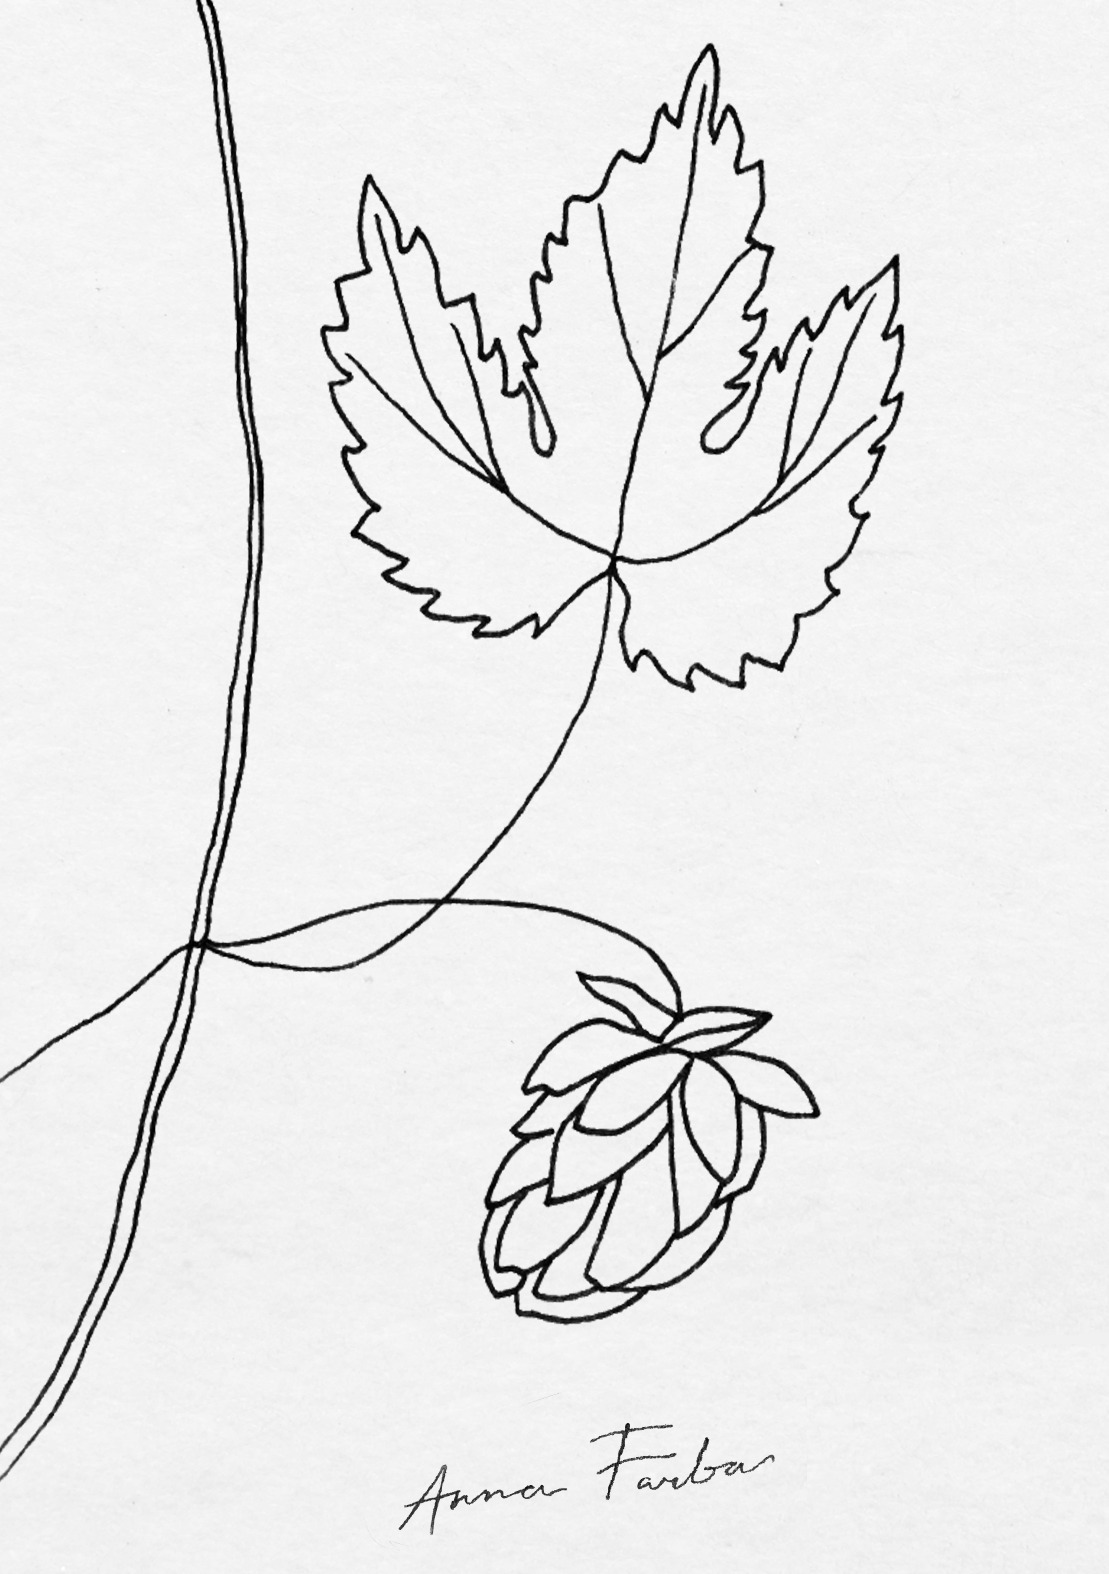 1109x1574 Botanical Sketchbook By Anna Farba. Drawing Plants And Flowers.